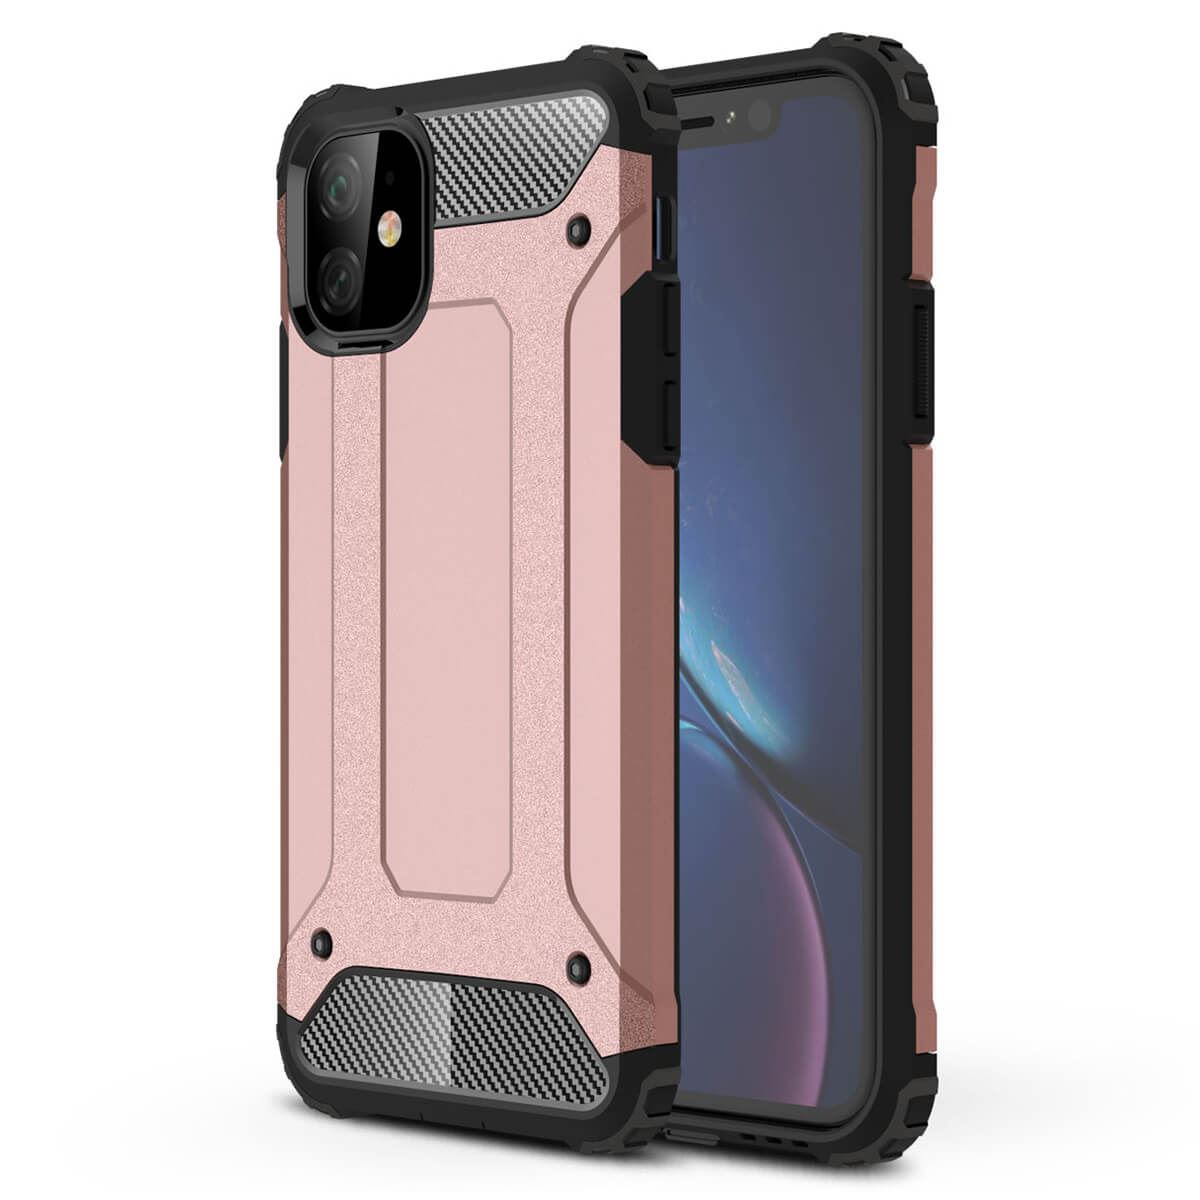 Shockproof-Bumper-Case-For-Apple-iPhone-10-X-8-7-Plus-6s-5s-Hybrid-Armor-Rugged thumbnail 23